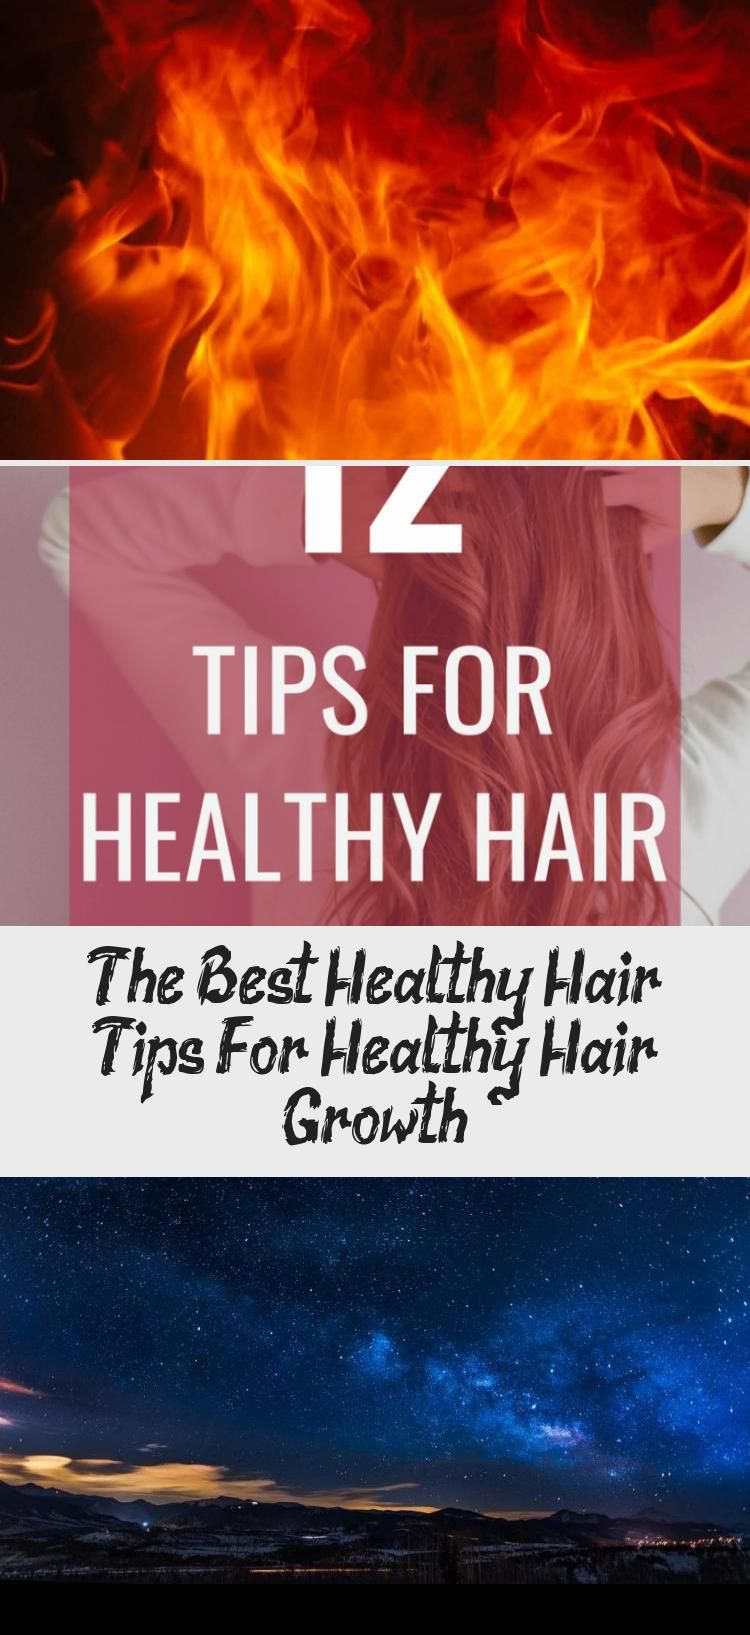 Hair Supplement} and Looking for hair treatments for hair growth? Don't waste your time on BS products. Instead, check out these 12 tips for healthy hair growth. #hairgrowthTimeLapse #hairgrowthTips #hairgrowthForMen #CastorOilhairgrowth #hairgrowthStages